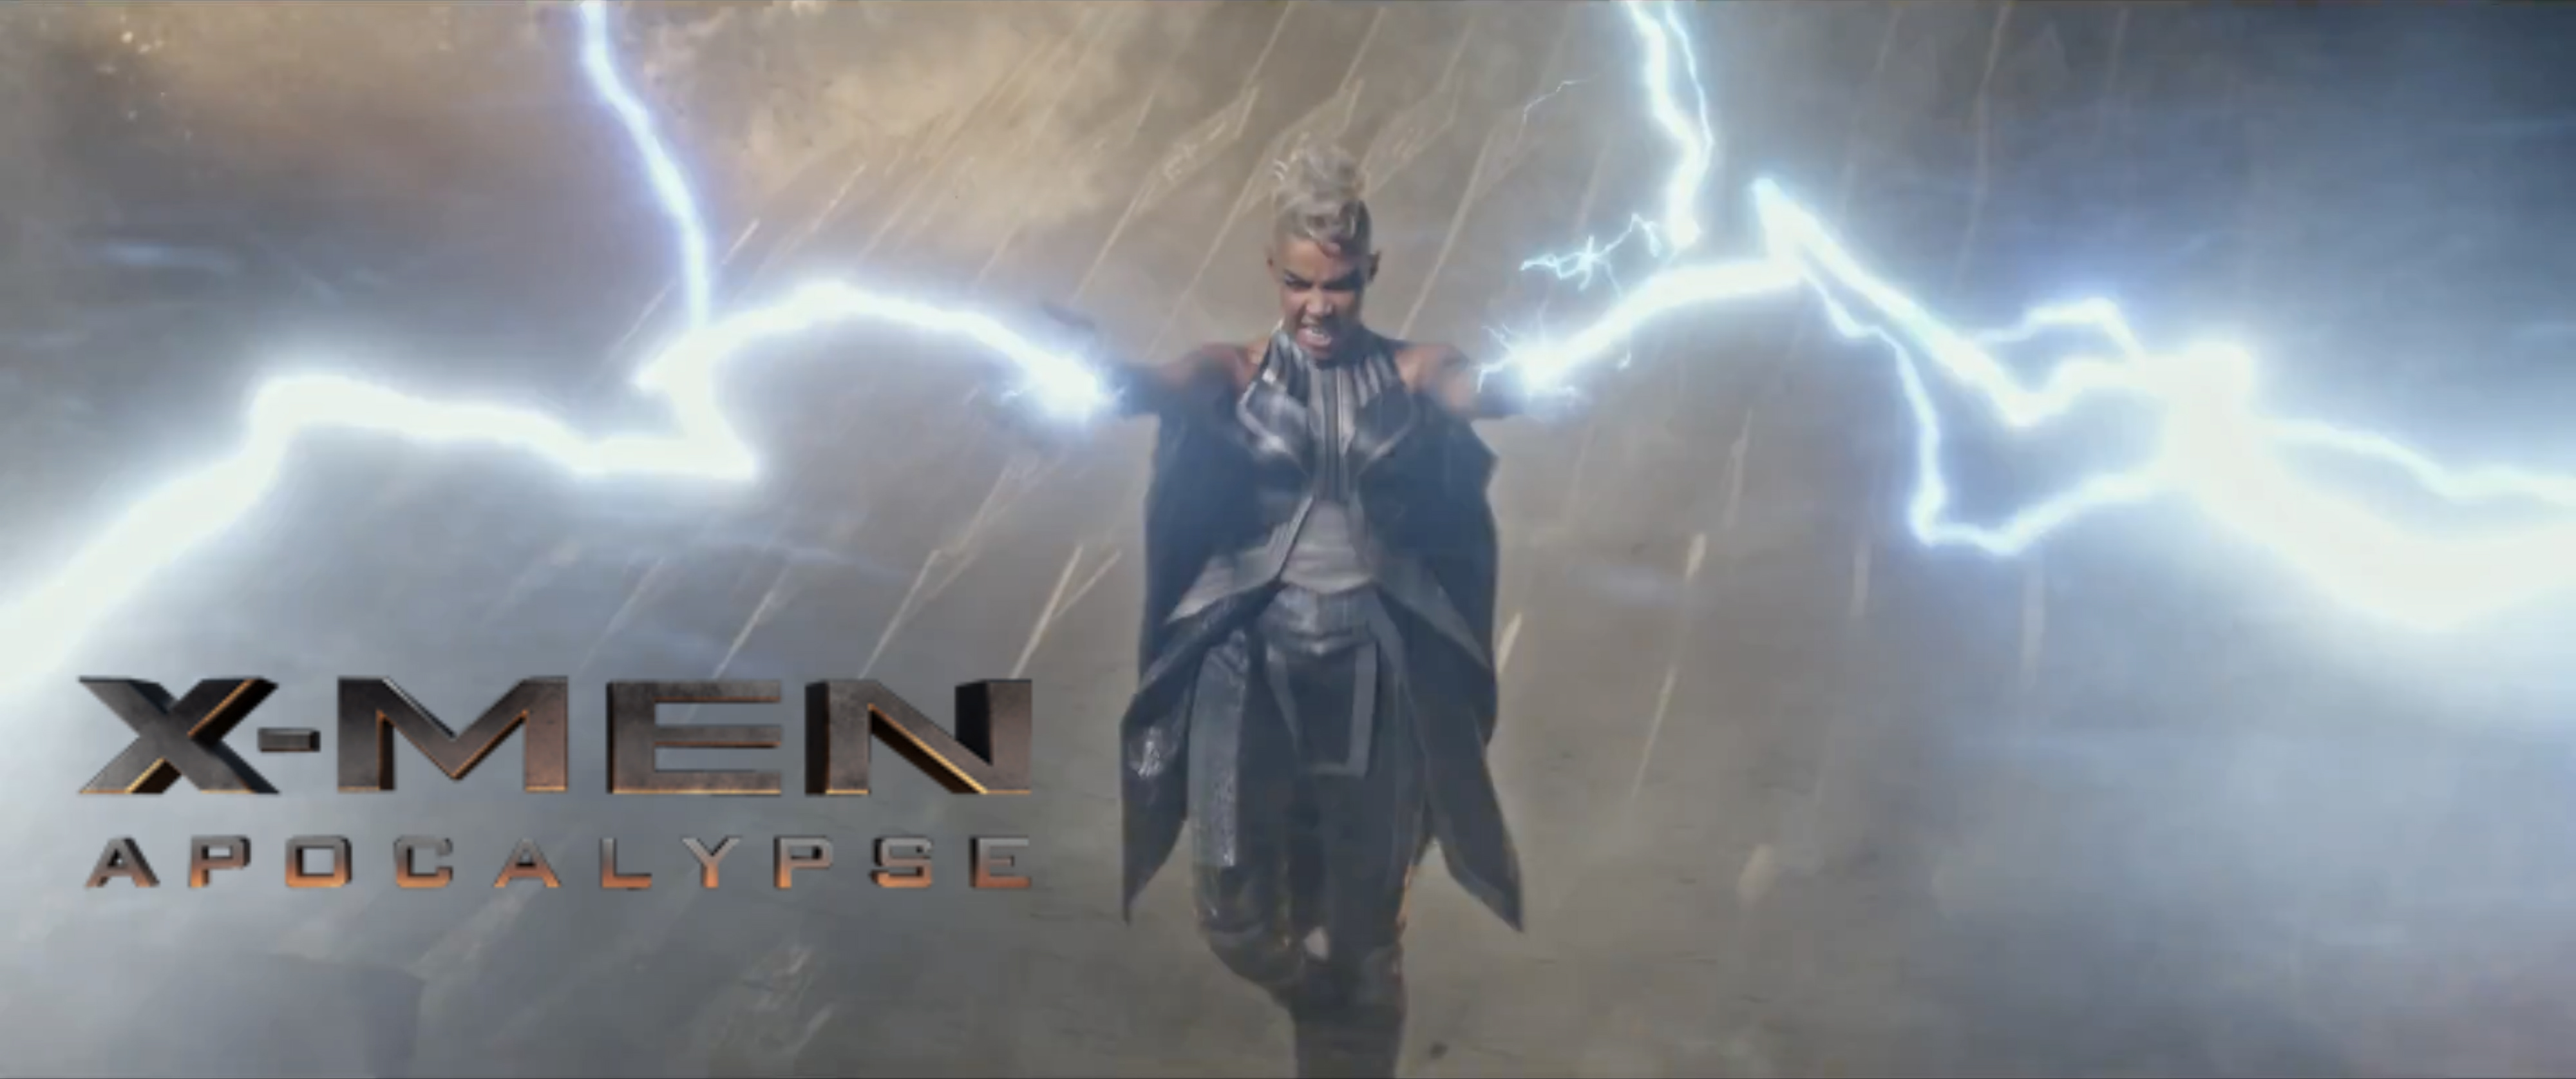 'Storm' Gets The Spotlight In An Electrifying New X-MEN ...